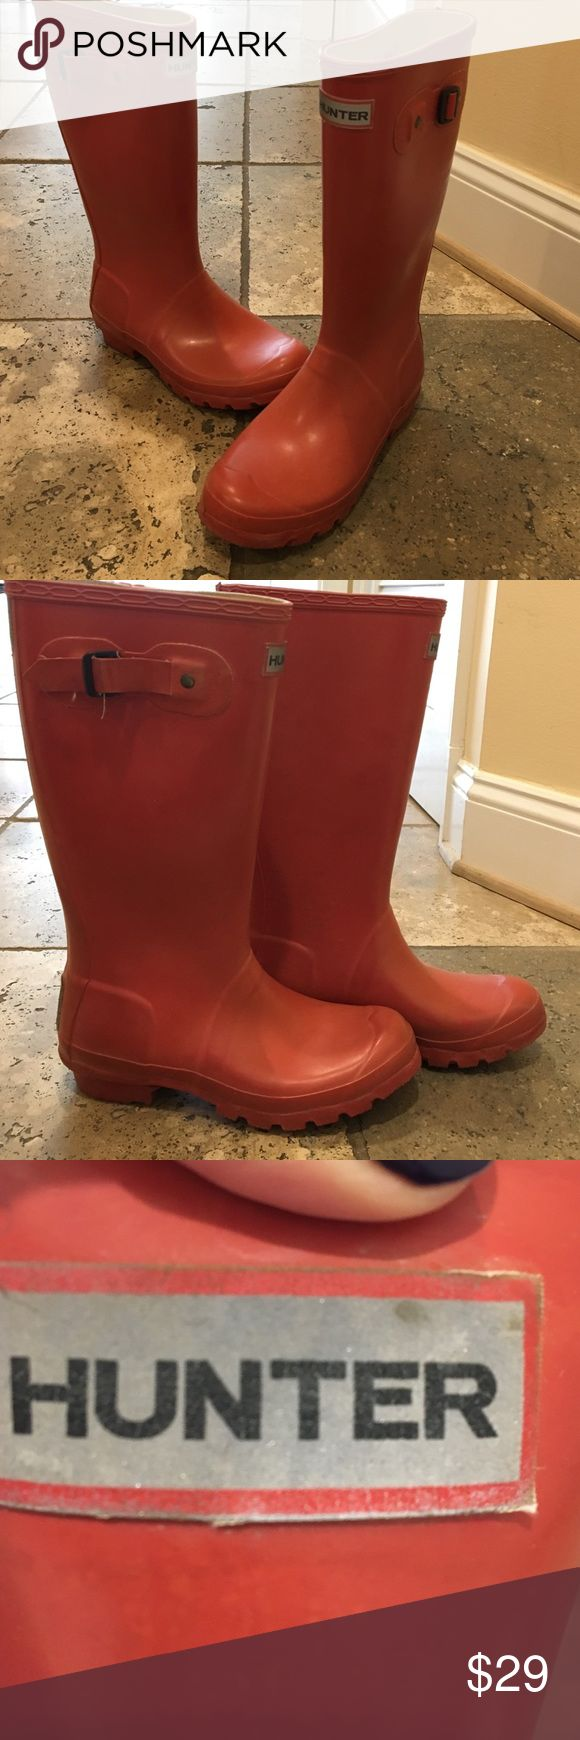 """Classic """"young"""" red hunter boots Shorter boots fit for kids (or petite adults). In great wearable condition! But, there is one small paint stain (you can see in the photo) and one of the buckles is not in tact (also in photo) which is why they're extra discounted!:) Hunter Boots Shoes Winter & Rain Boots"""